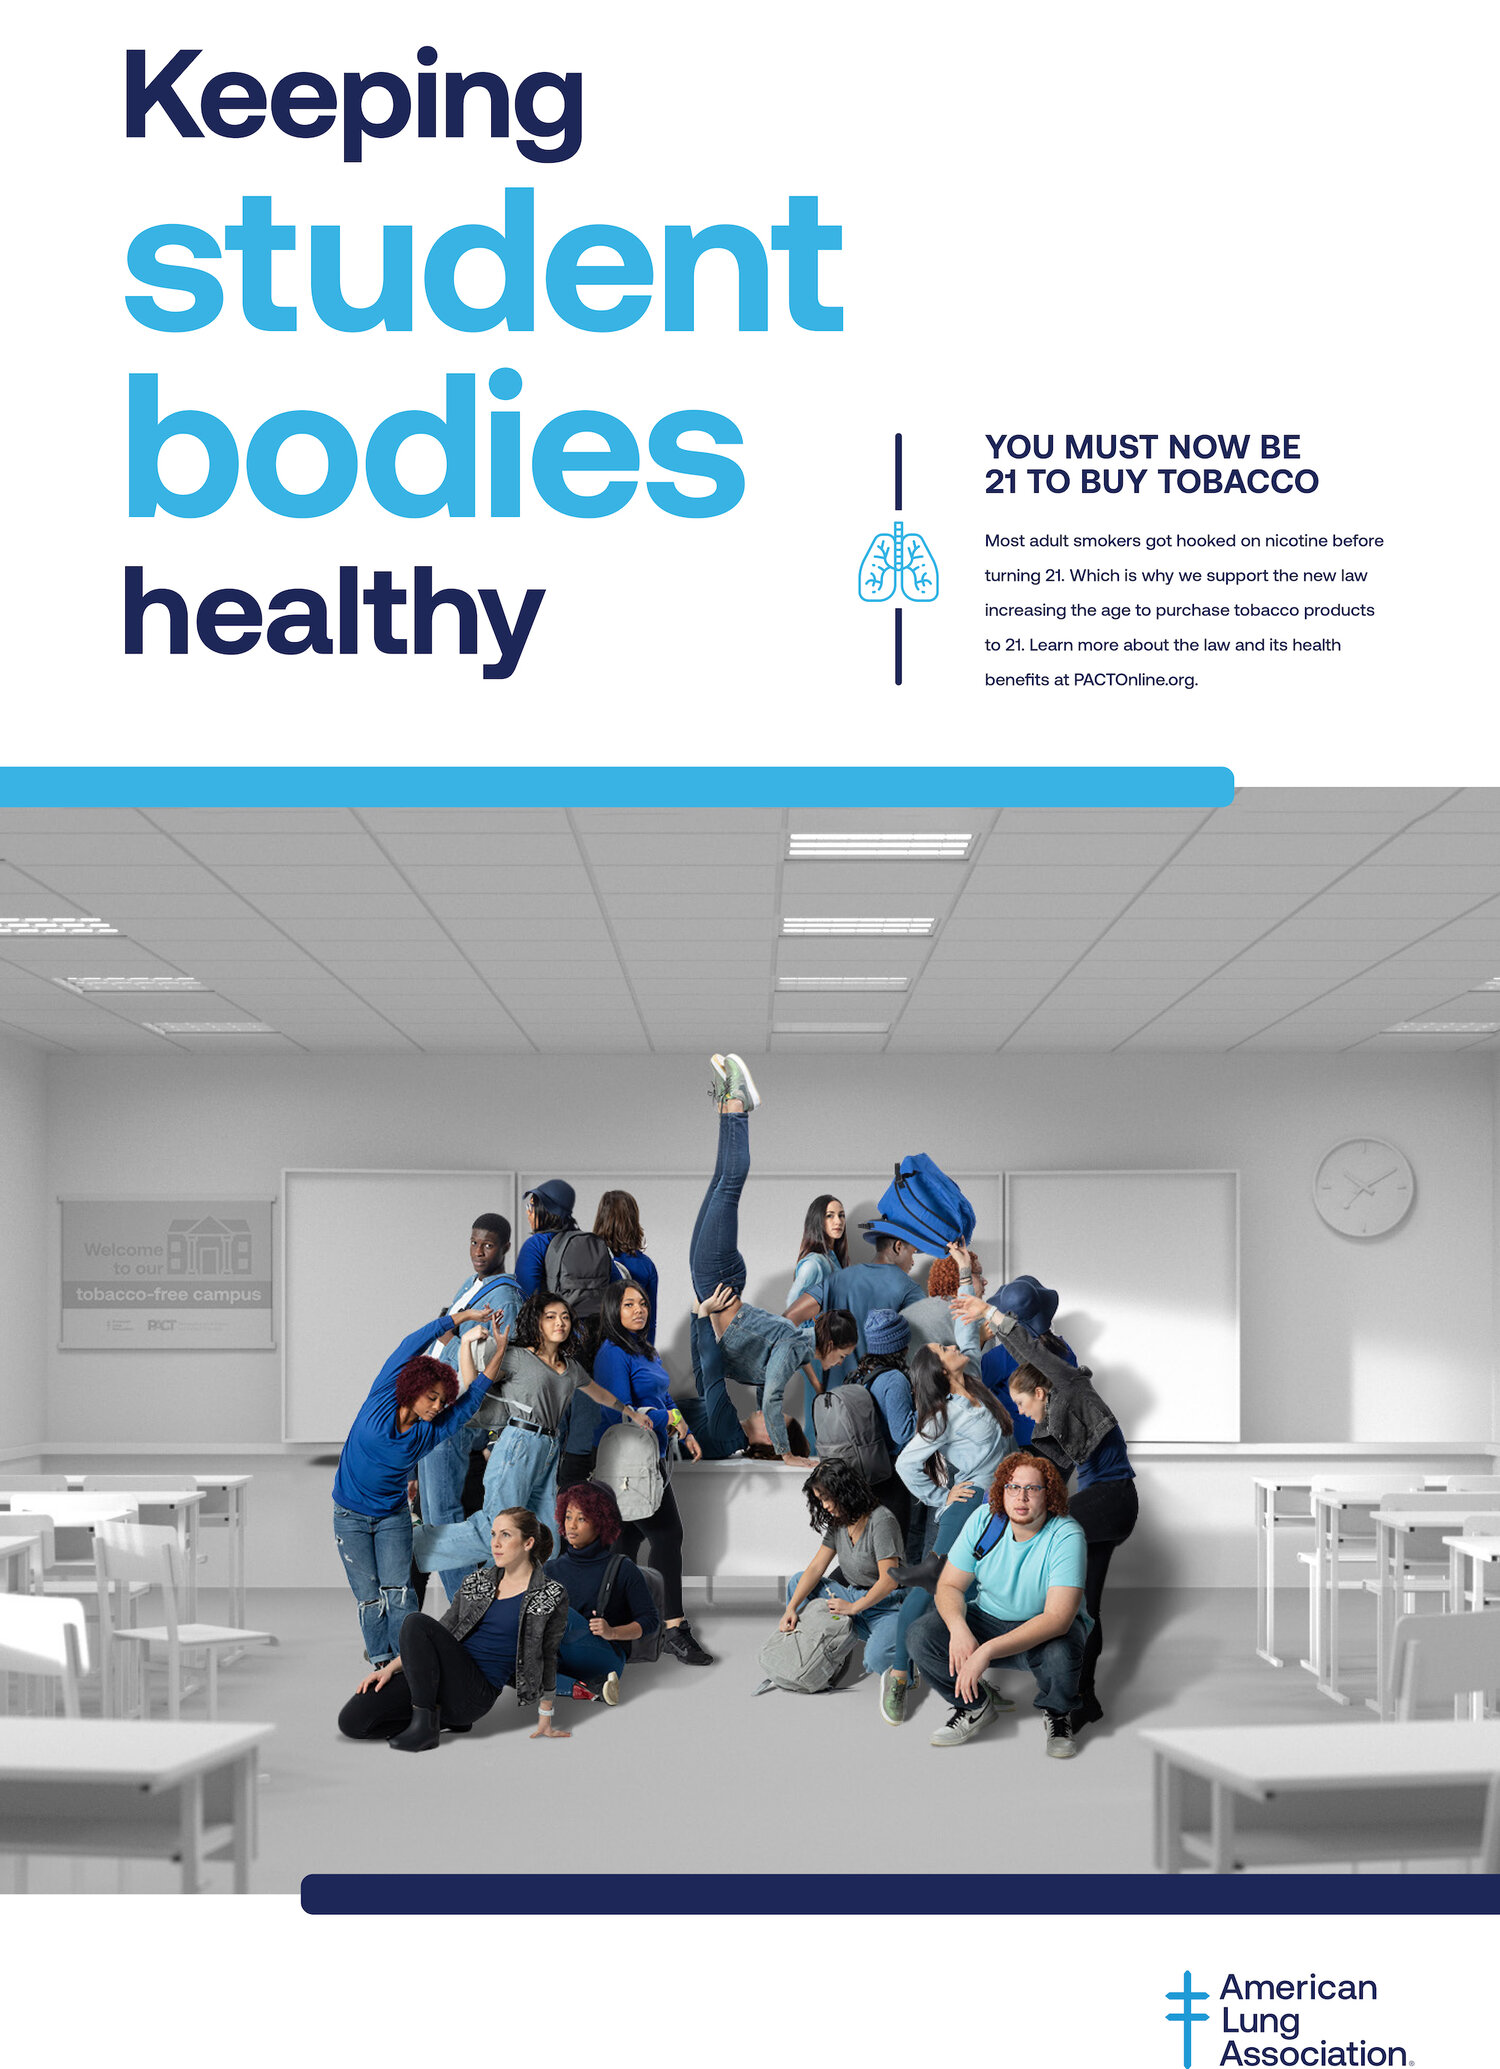 American Lung Association: Keeping Student Bodies Healthy